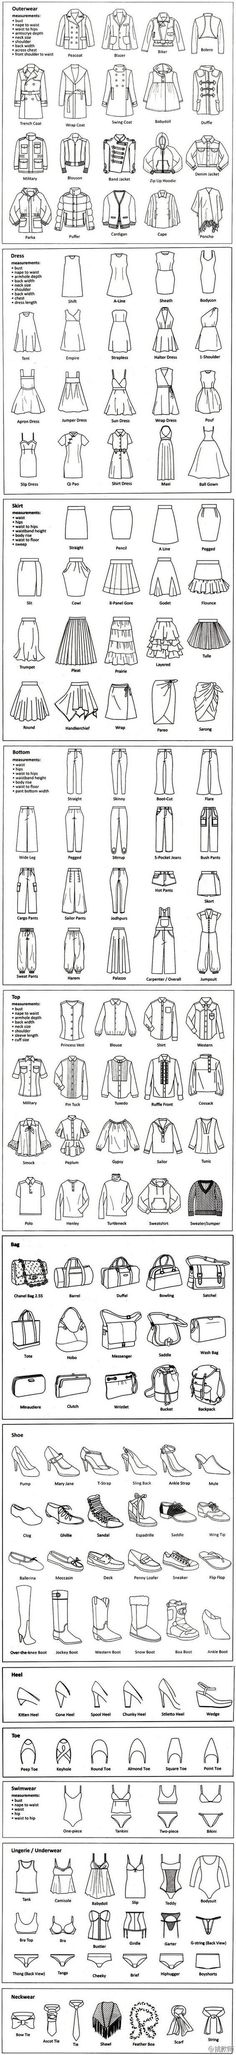 Fashion 101: A quick visualization of what's what.: